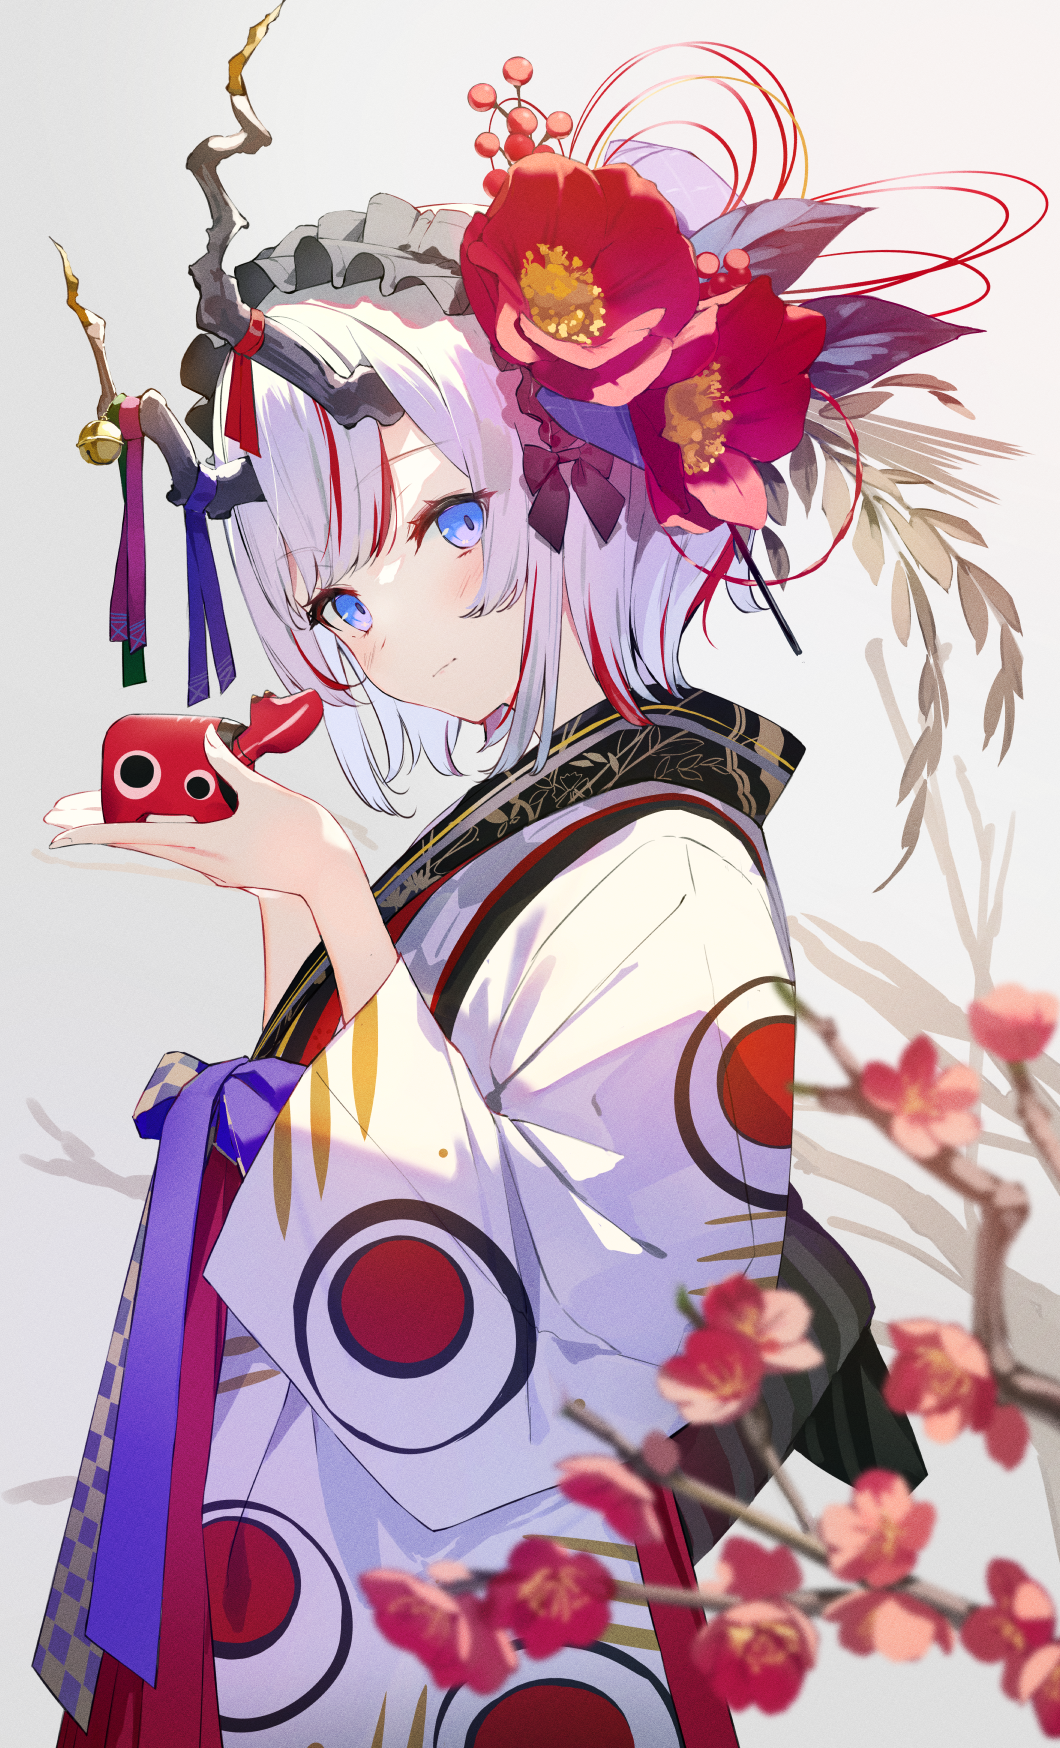 1girl blue_eyes blue_ribbon blurry blurry_foreground blush cherry_blossoms chinese_zodiac closed_mouth commentary_request depth_of_field flower from_side grey_background hair_flower hair_ornament hairband hands_up highres holding horn_bell horn_ornament horn_ribbon horns japanese_clothes kimono long_sleeves looking_at_viewer looking_to_the_side multicolored_hair original patterned_clothing purple_ribbon red_flower red_ribbon redhead ribbon short_hair simple_background smile solo streaked_hair sutorora tagme tree_branch two-tone_hair white_hair white_headwear white_kimono wide_sleeves year_of_the_ox